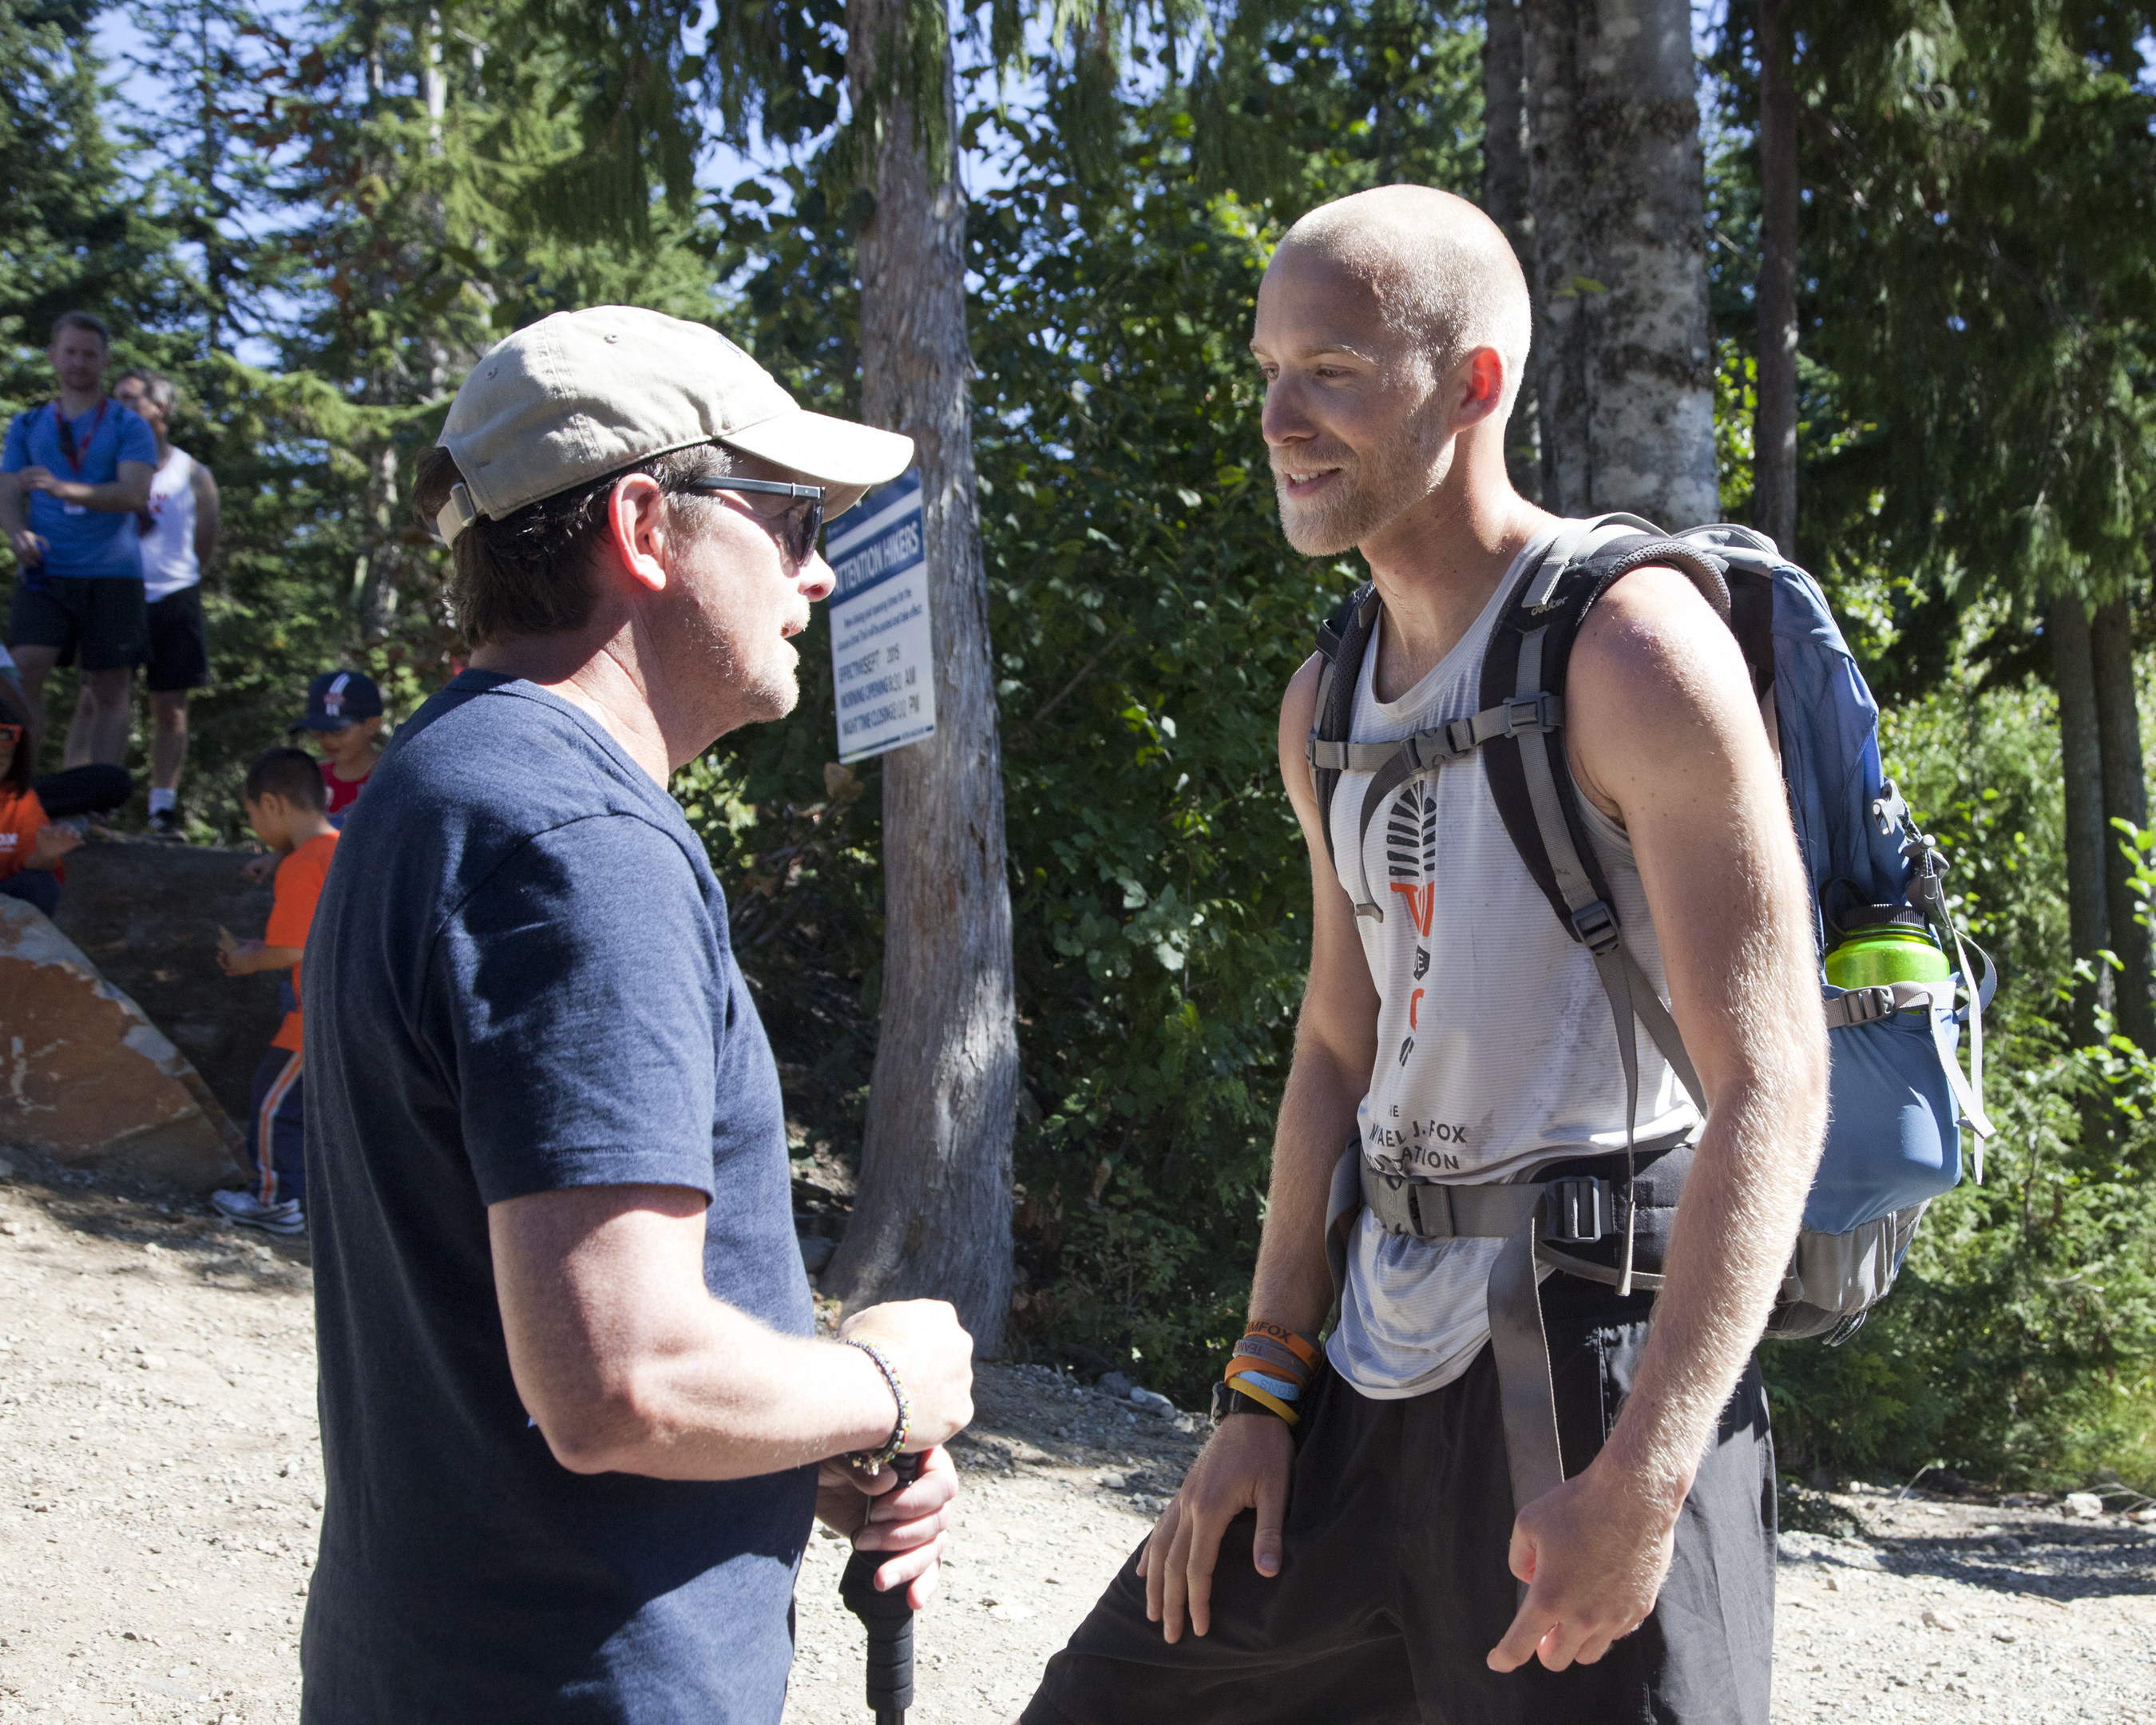 Michael J. Fox congratulates ultra-athlete Sam Fox (no relation) atop of Grouse Mountain in Vancouver, BC, on Saturday, September 12. The climb marked the end of Tour de Fox, a 103-day odyssey across the contiguous United States and into Canada that raised nearly $2 million for Parkinson's research. Sam, 28, of Rhode Island, a staffer at The Michael J. Fox Foundation, biked 8,000 miles along the route and climbed the highest peak in each U.S. state. Tour de Fox galvanized more than 2,000 members of the Parkinson's community to take part in the quest to speed a cure for Parkinson's disease. Sam completed the Tour in honor of his mother, Lucy, who was diagnosed with Parkinson's in 2000.